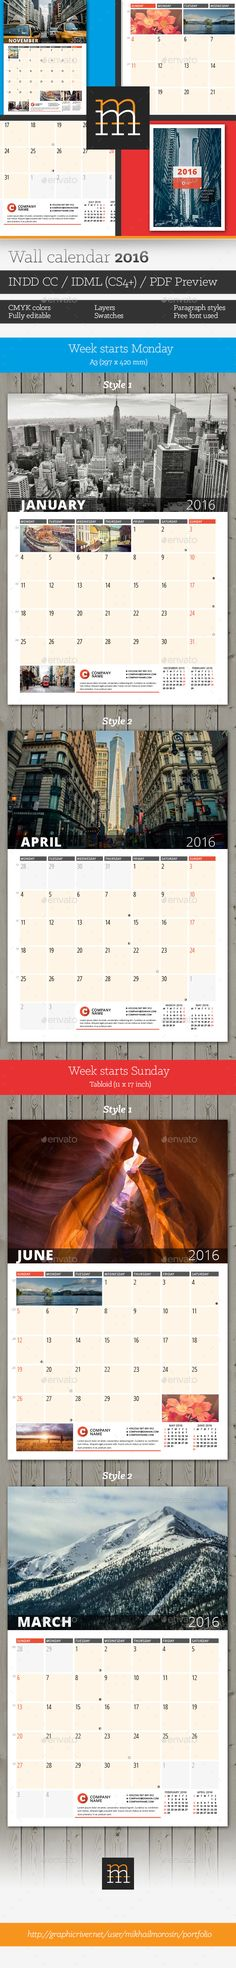 Wall Calendar 2016 Template PSD #design Download: http://graphicriver.net/item/wall-calendar-2016/13621396?ref=ksioks